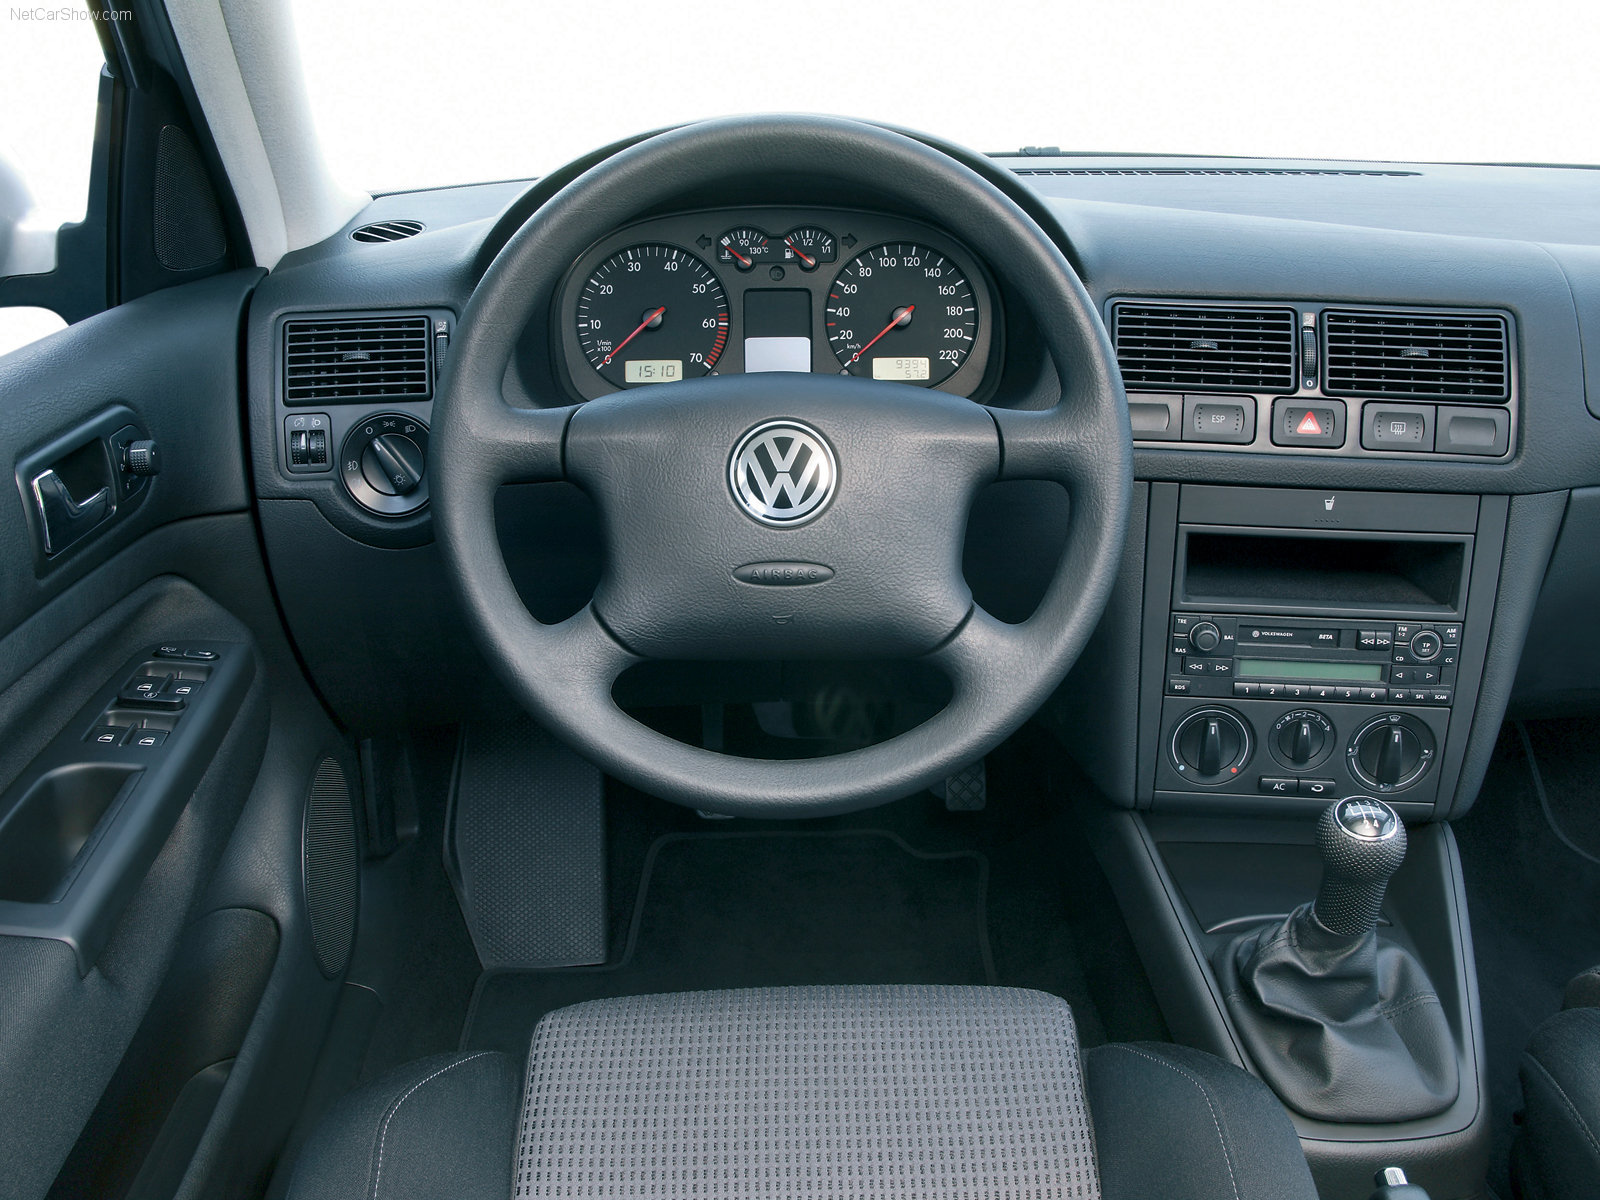 volkswagen golf 4 photos reviews news specs buy car. Black Bedroom Furniture Sets. Home Design Ideas